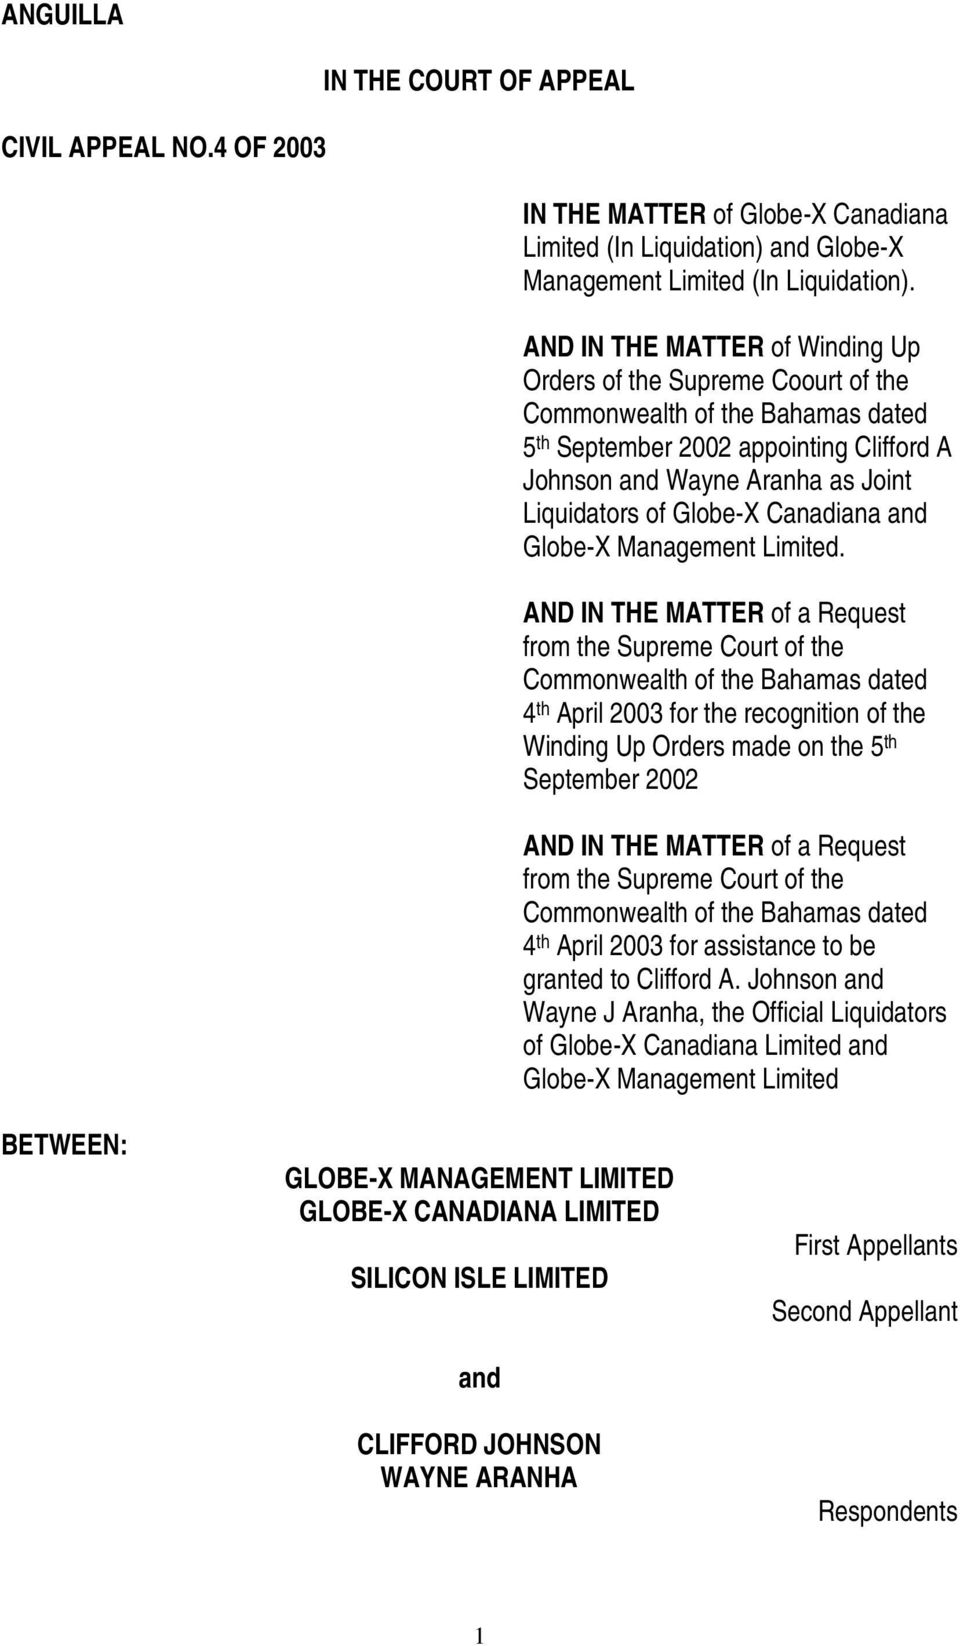 Globe-X Canadiana and Globe-X Management Limited.